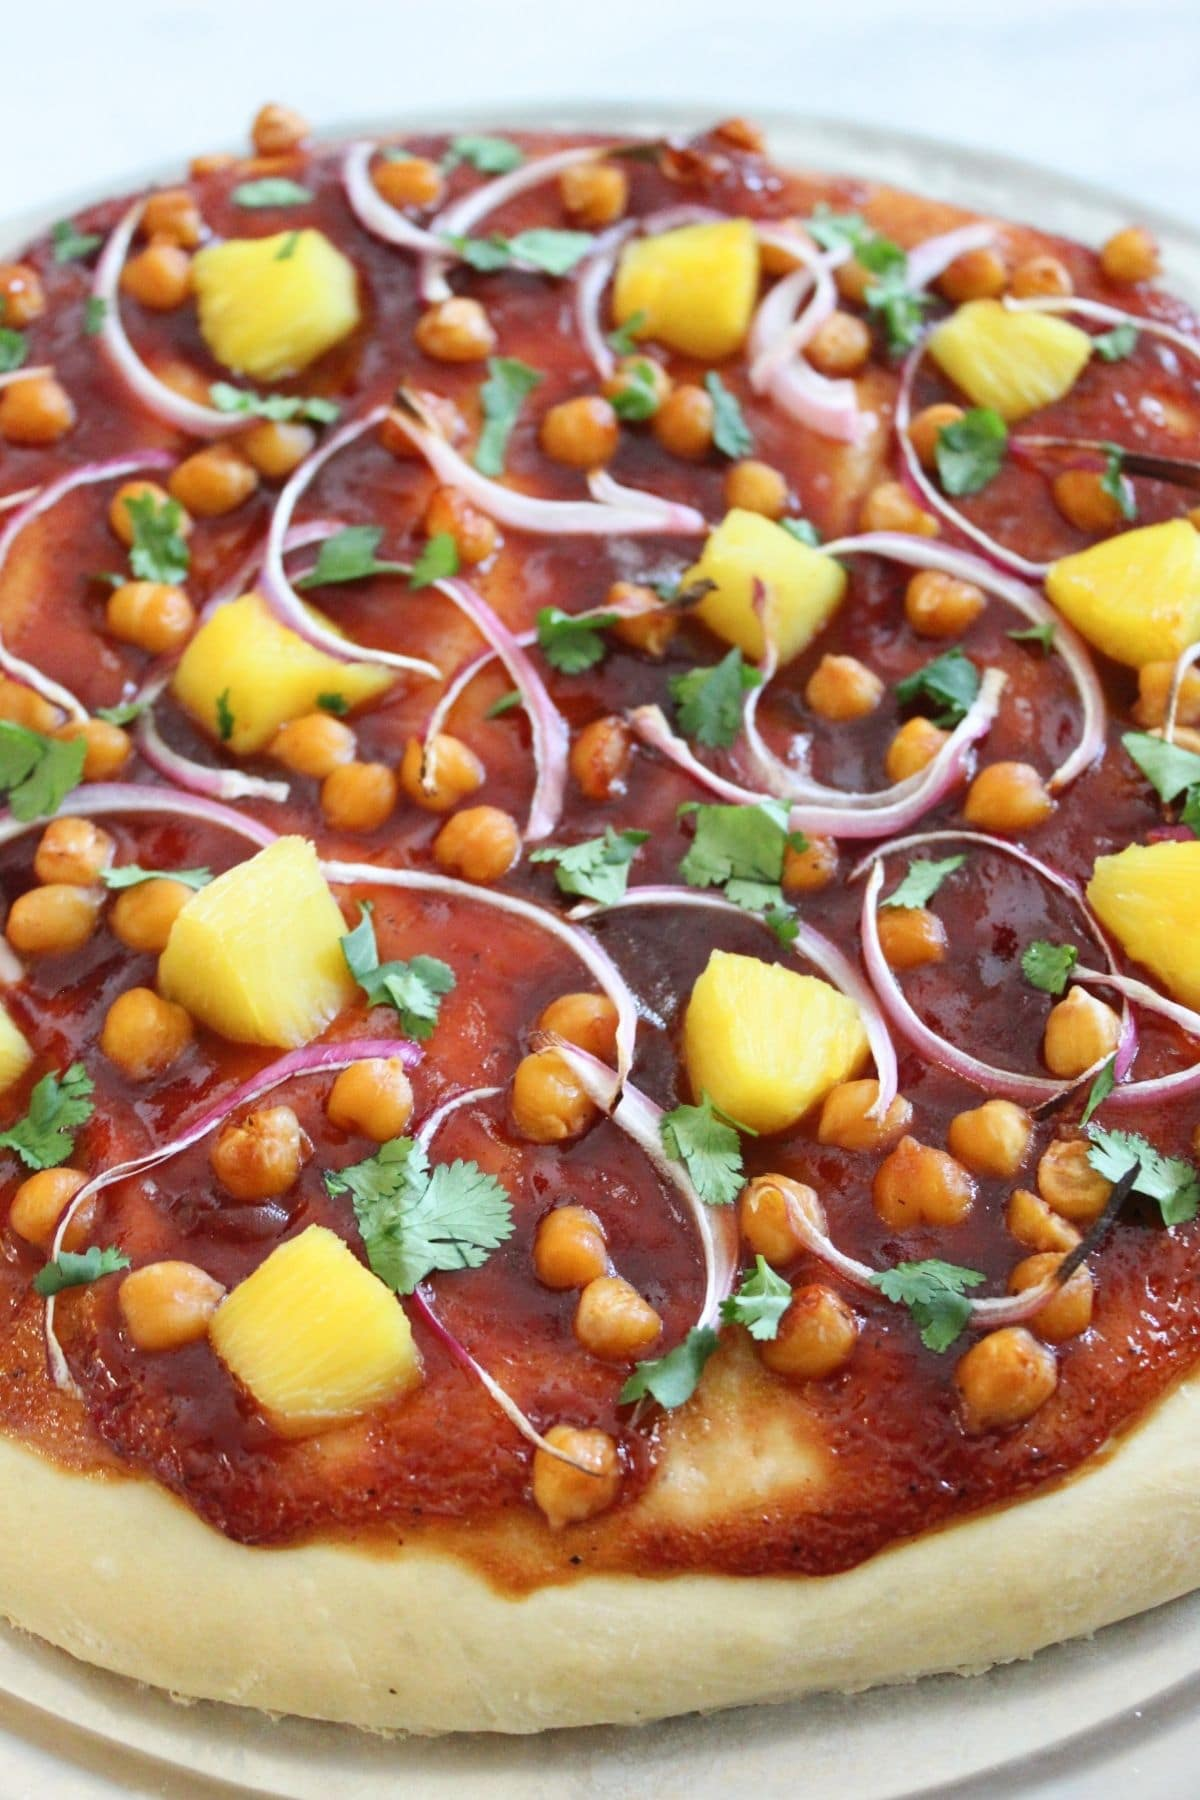 close up view of completed vegan bbq pizza finished with fresh cilantro